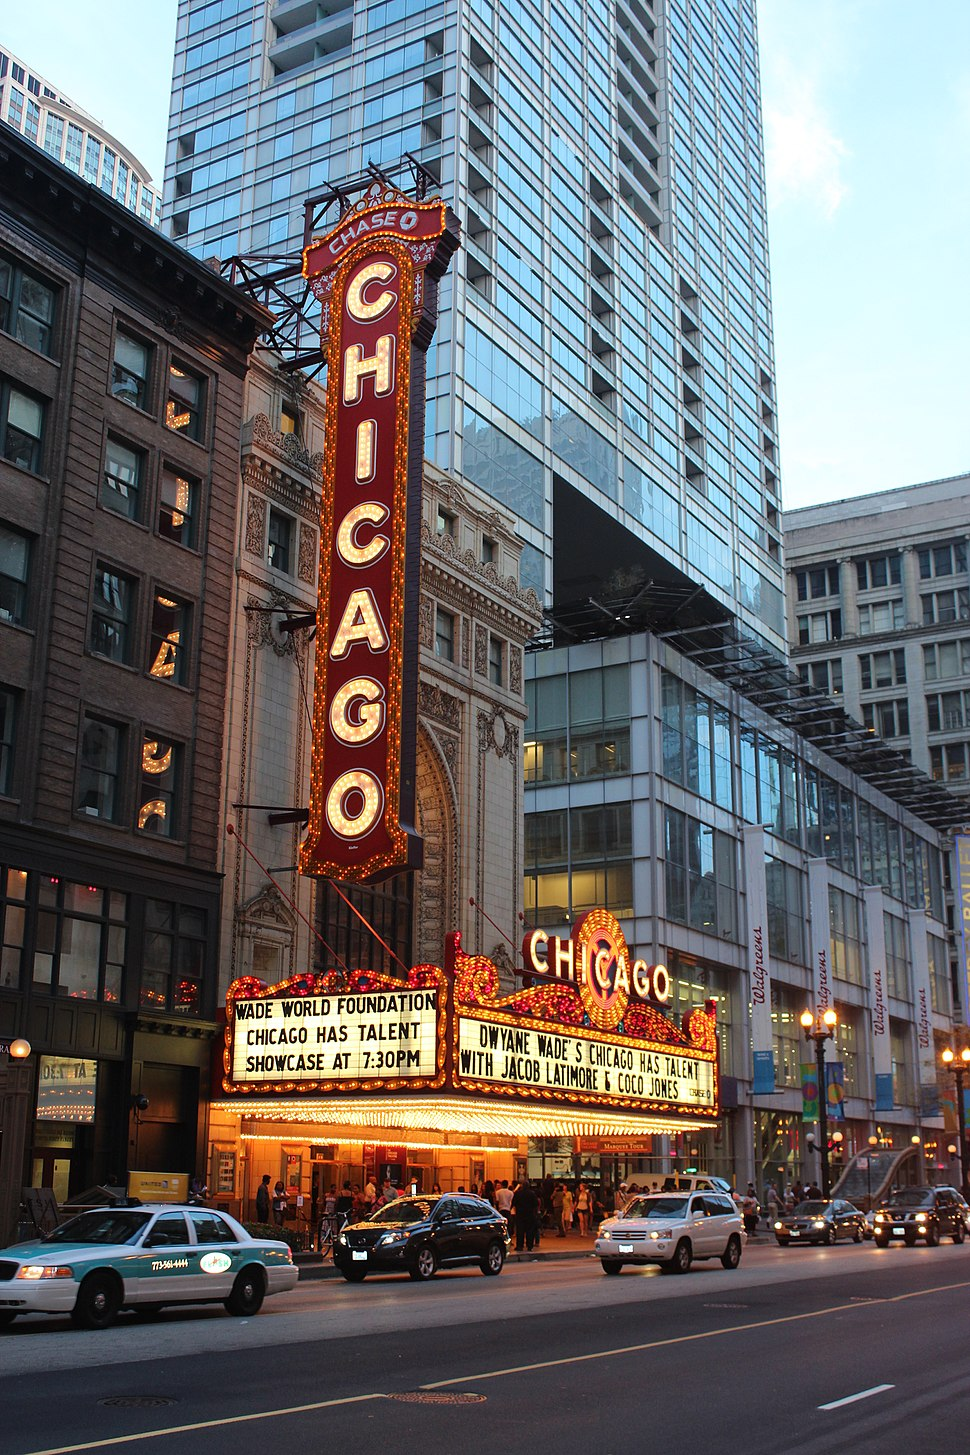 20120825 Dwyane Wade's talent search at Chicago Theatre